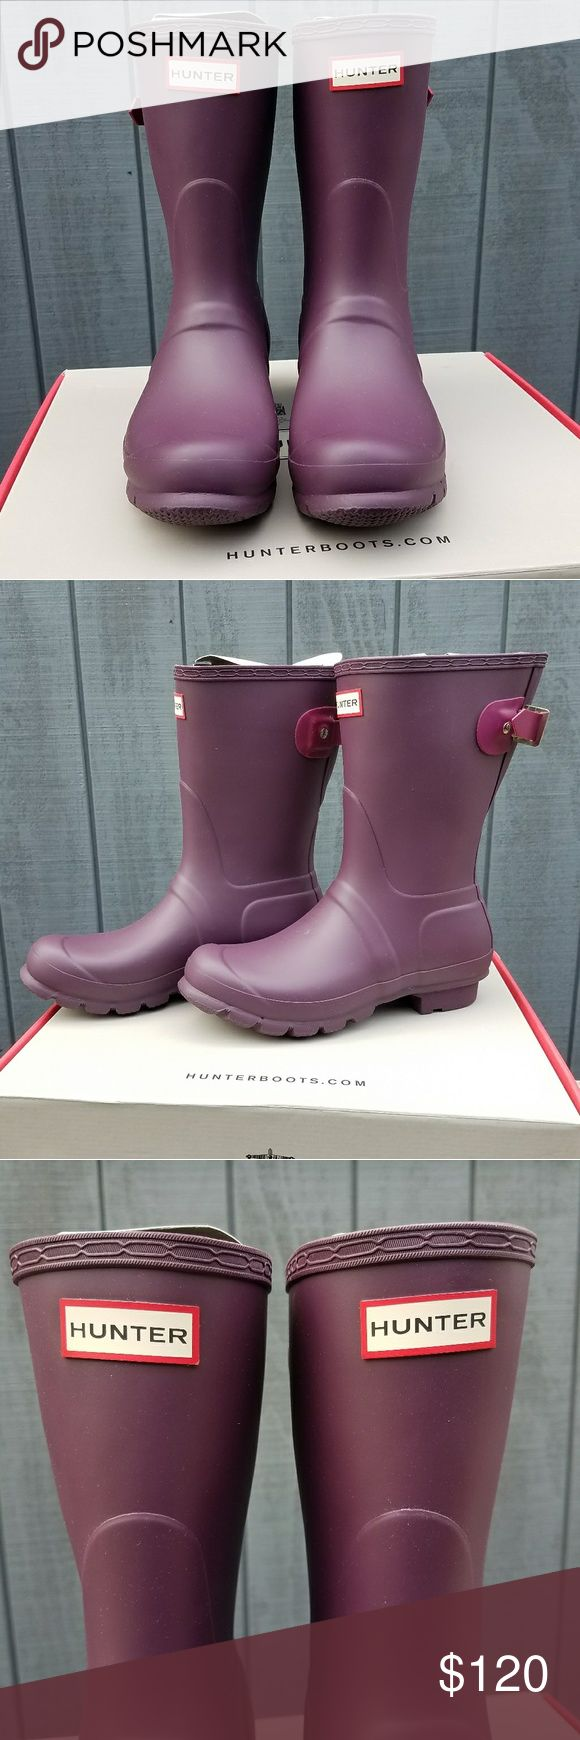 """Hunter Original Waterproof Adjustable Short Boot - Round toe - Molded upper - Pull-on - Removable padded insole - Adjustable back buckle strap - Waterproof - Approx. 9.5"""" shaft height, 14.5"""" opening circumference - Approx. 1"""" heel - Manmade upper and sole Hunter Boots Shoes"""